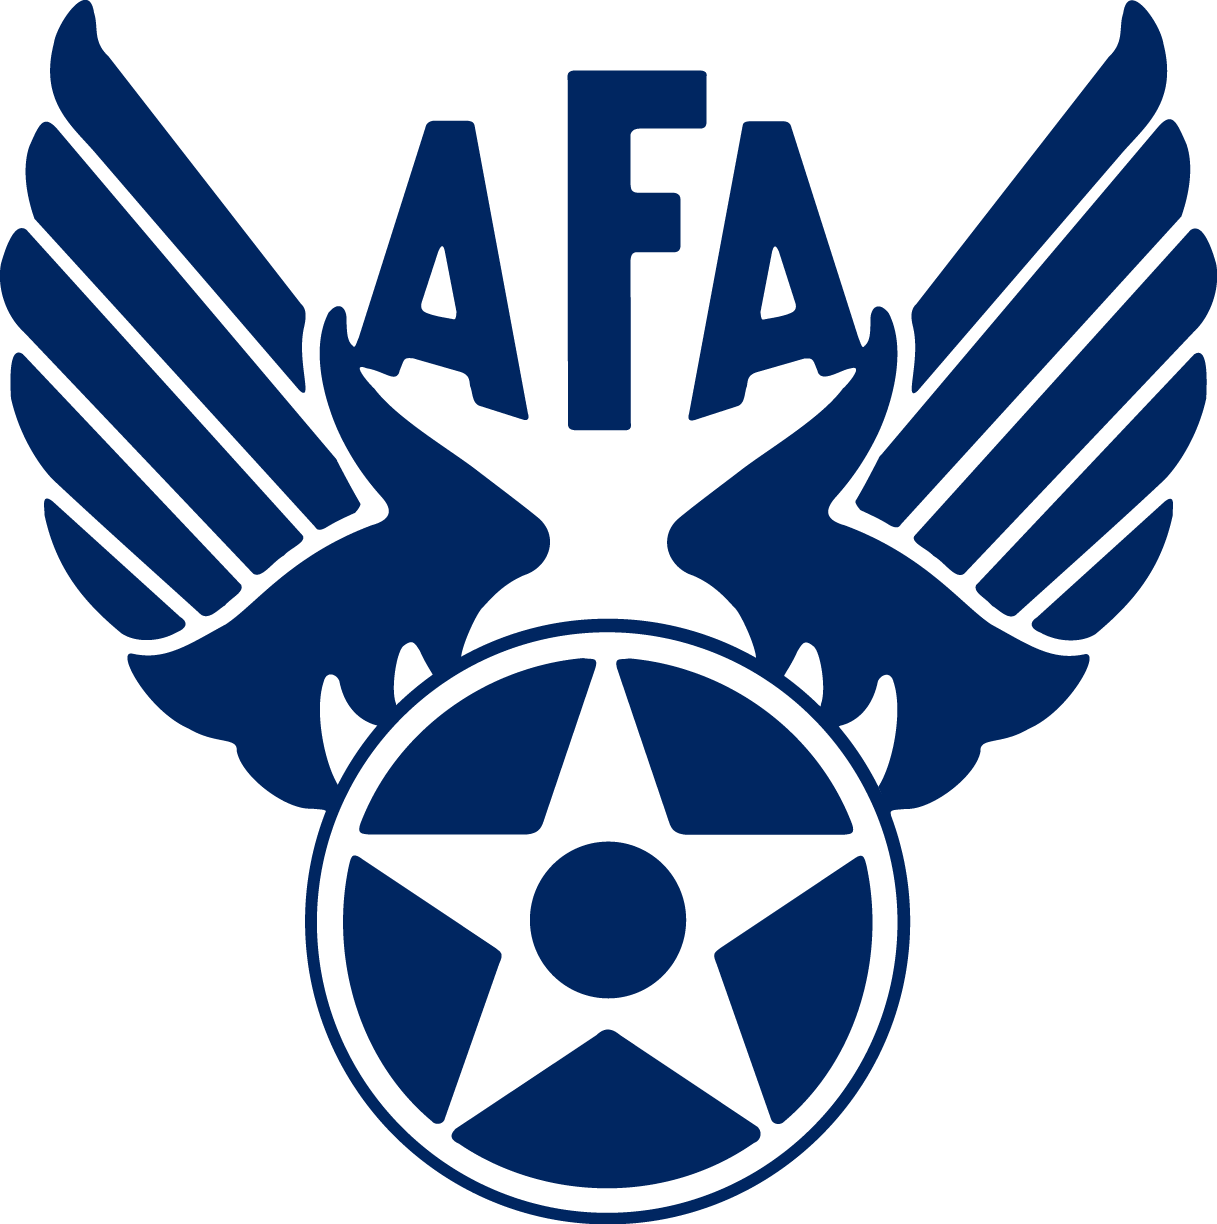 United states air force png. Th annual space